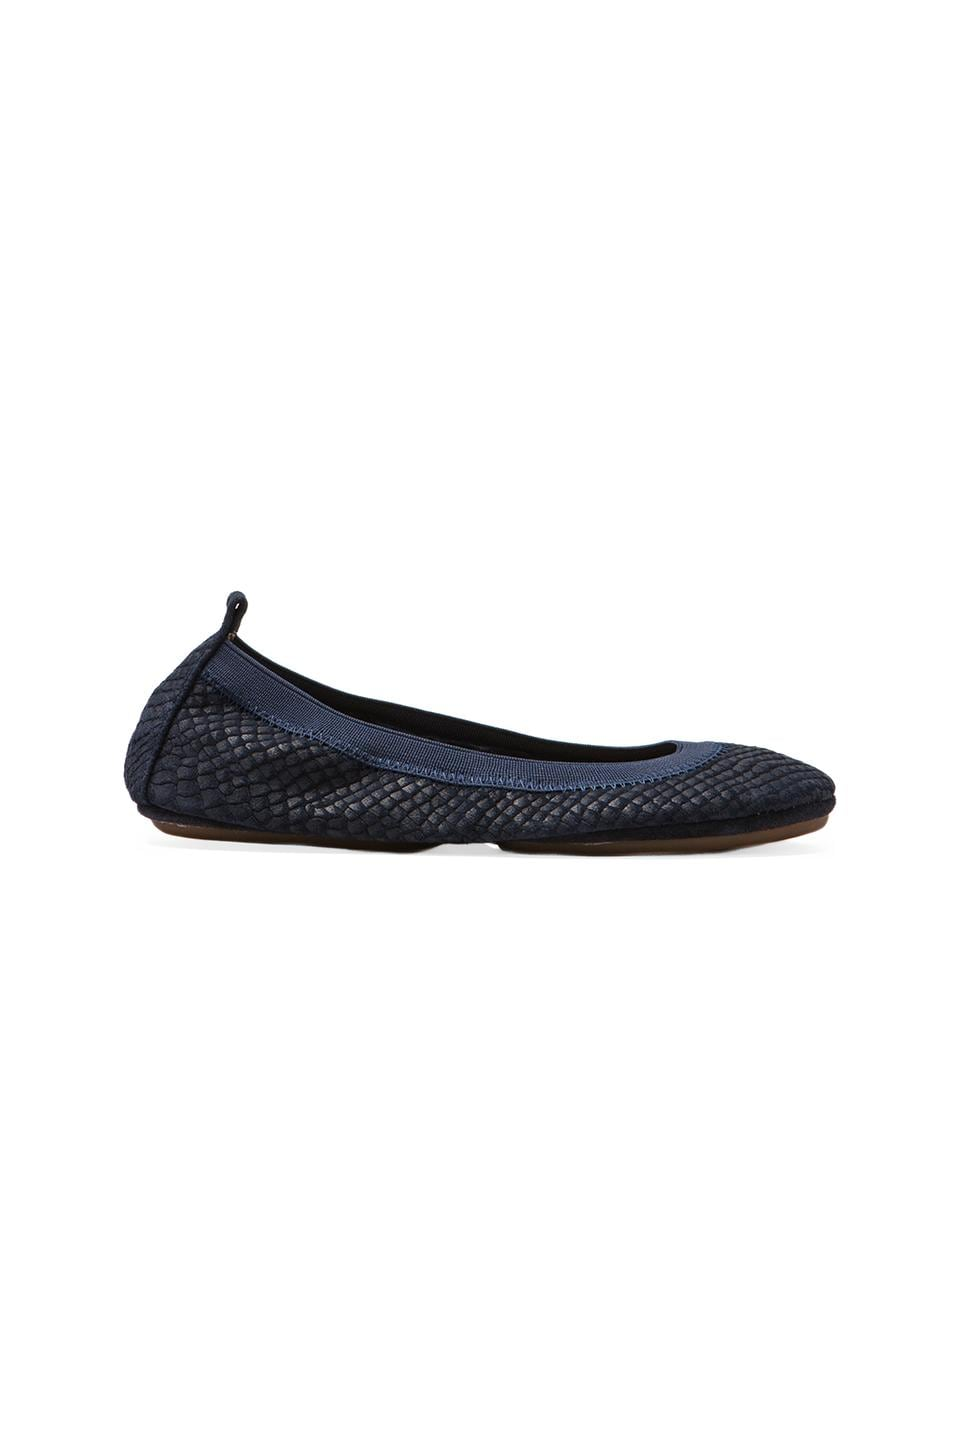 Yosi Samra Embossed Croc Flatin Midnight